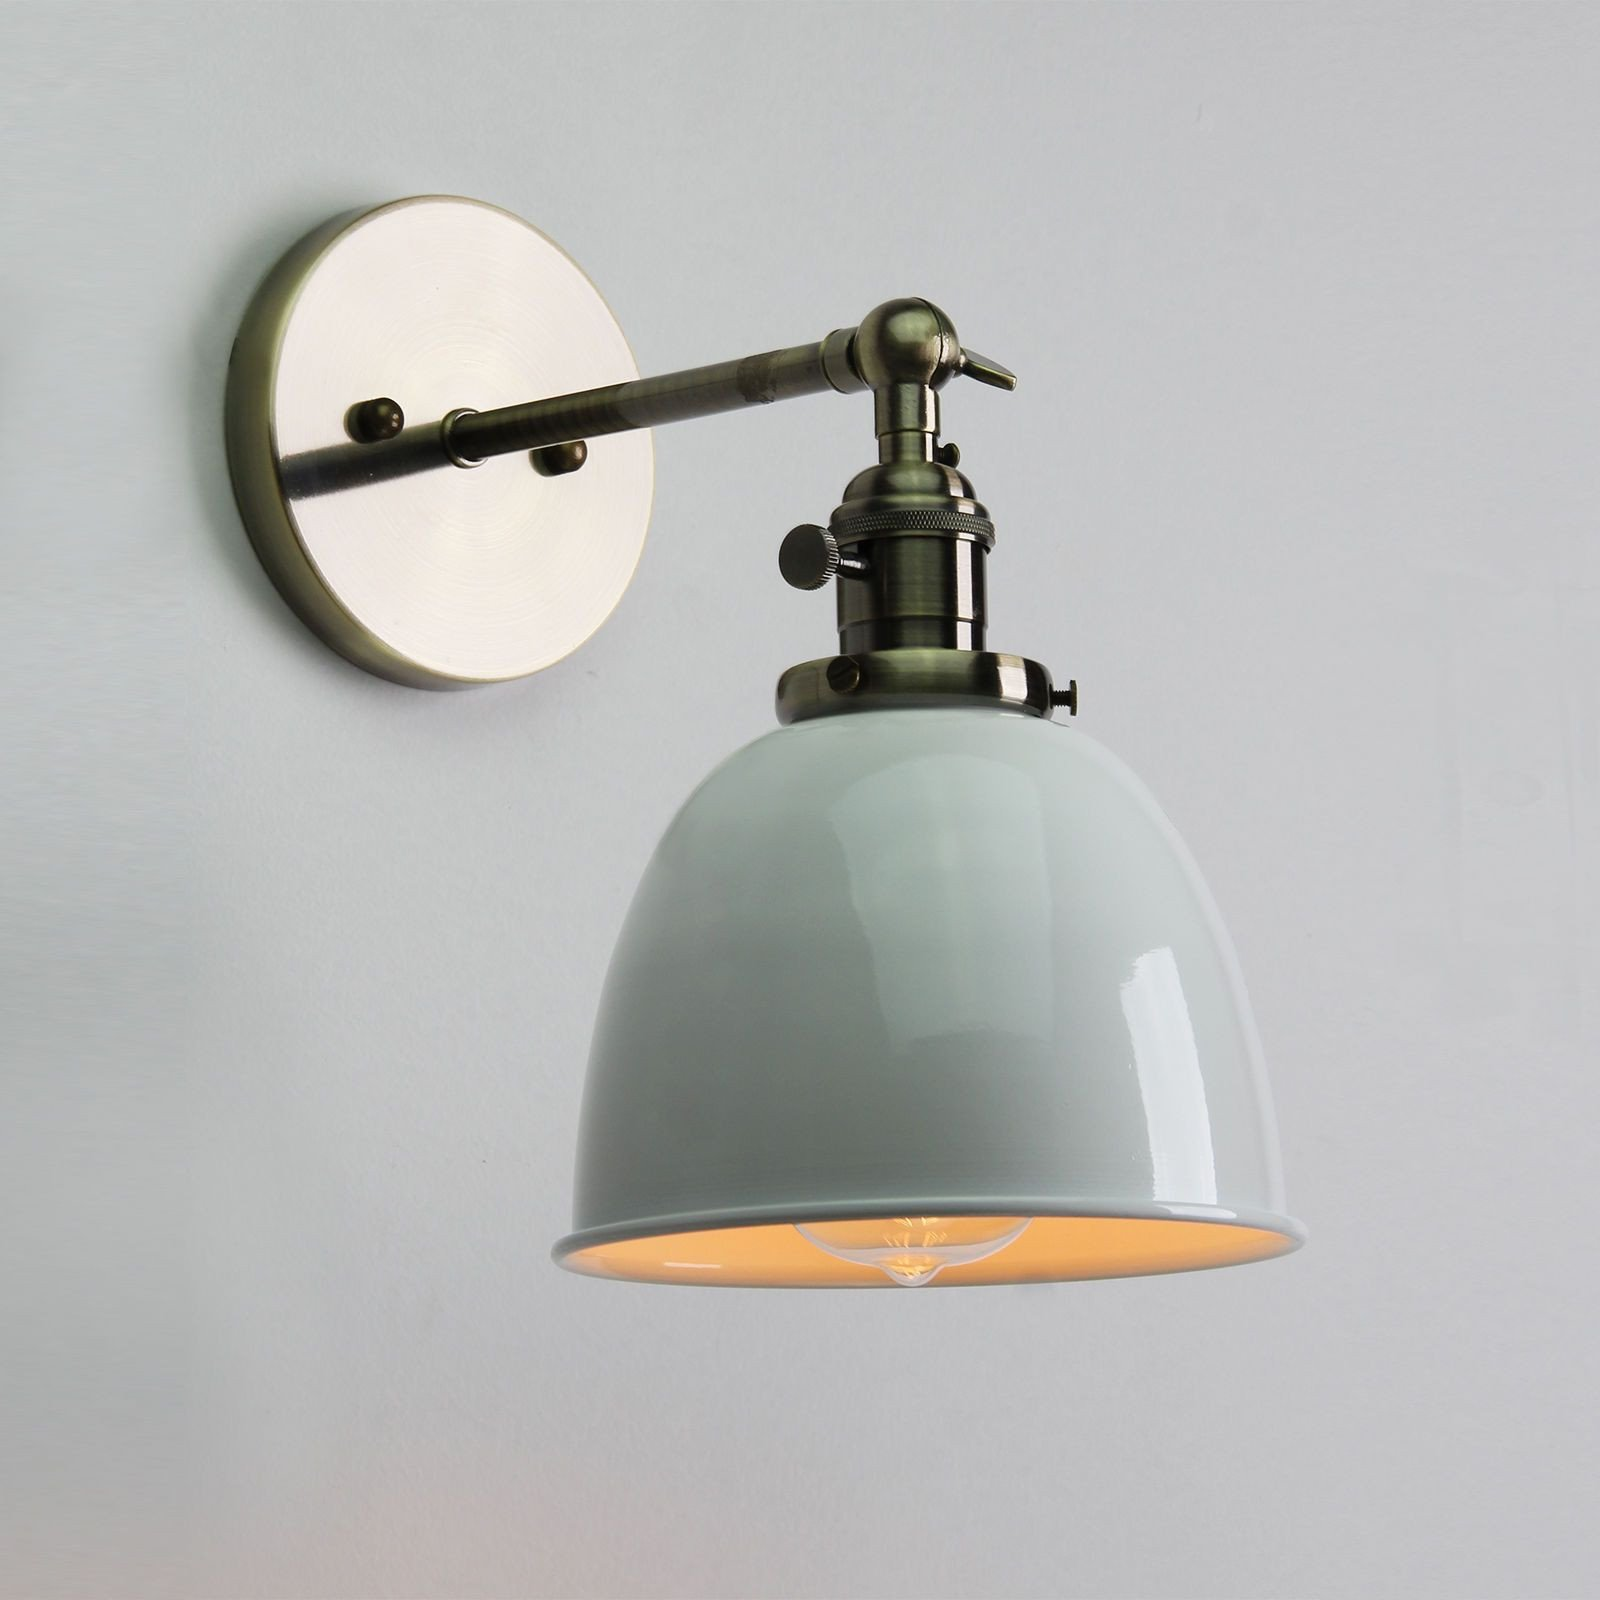 Plug In Wall Lamps for Bedroom Lovely It Has A Clean Industrial Look that is Super Cool the Glass